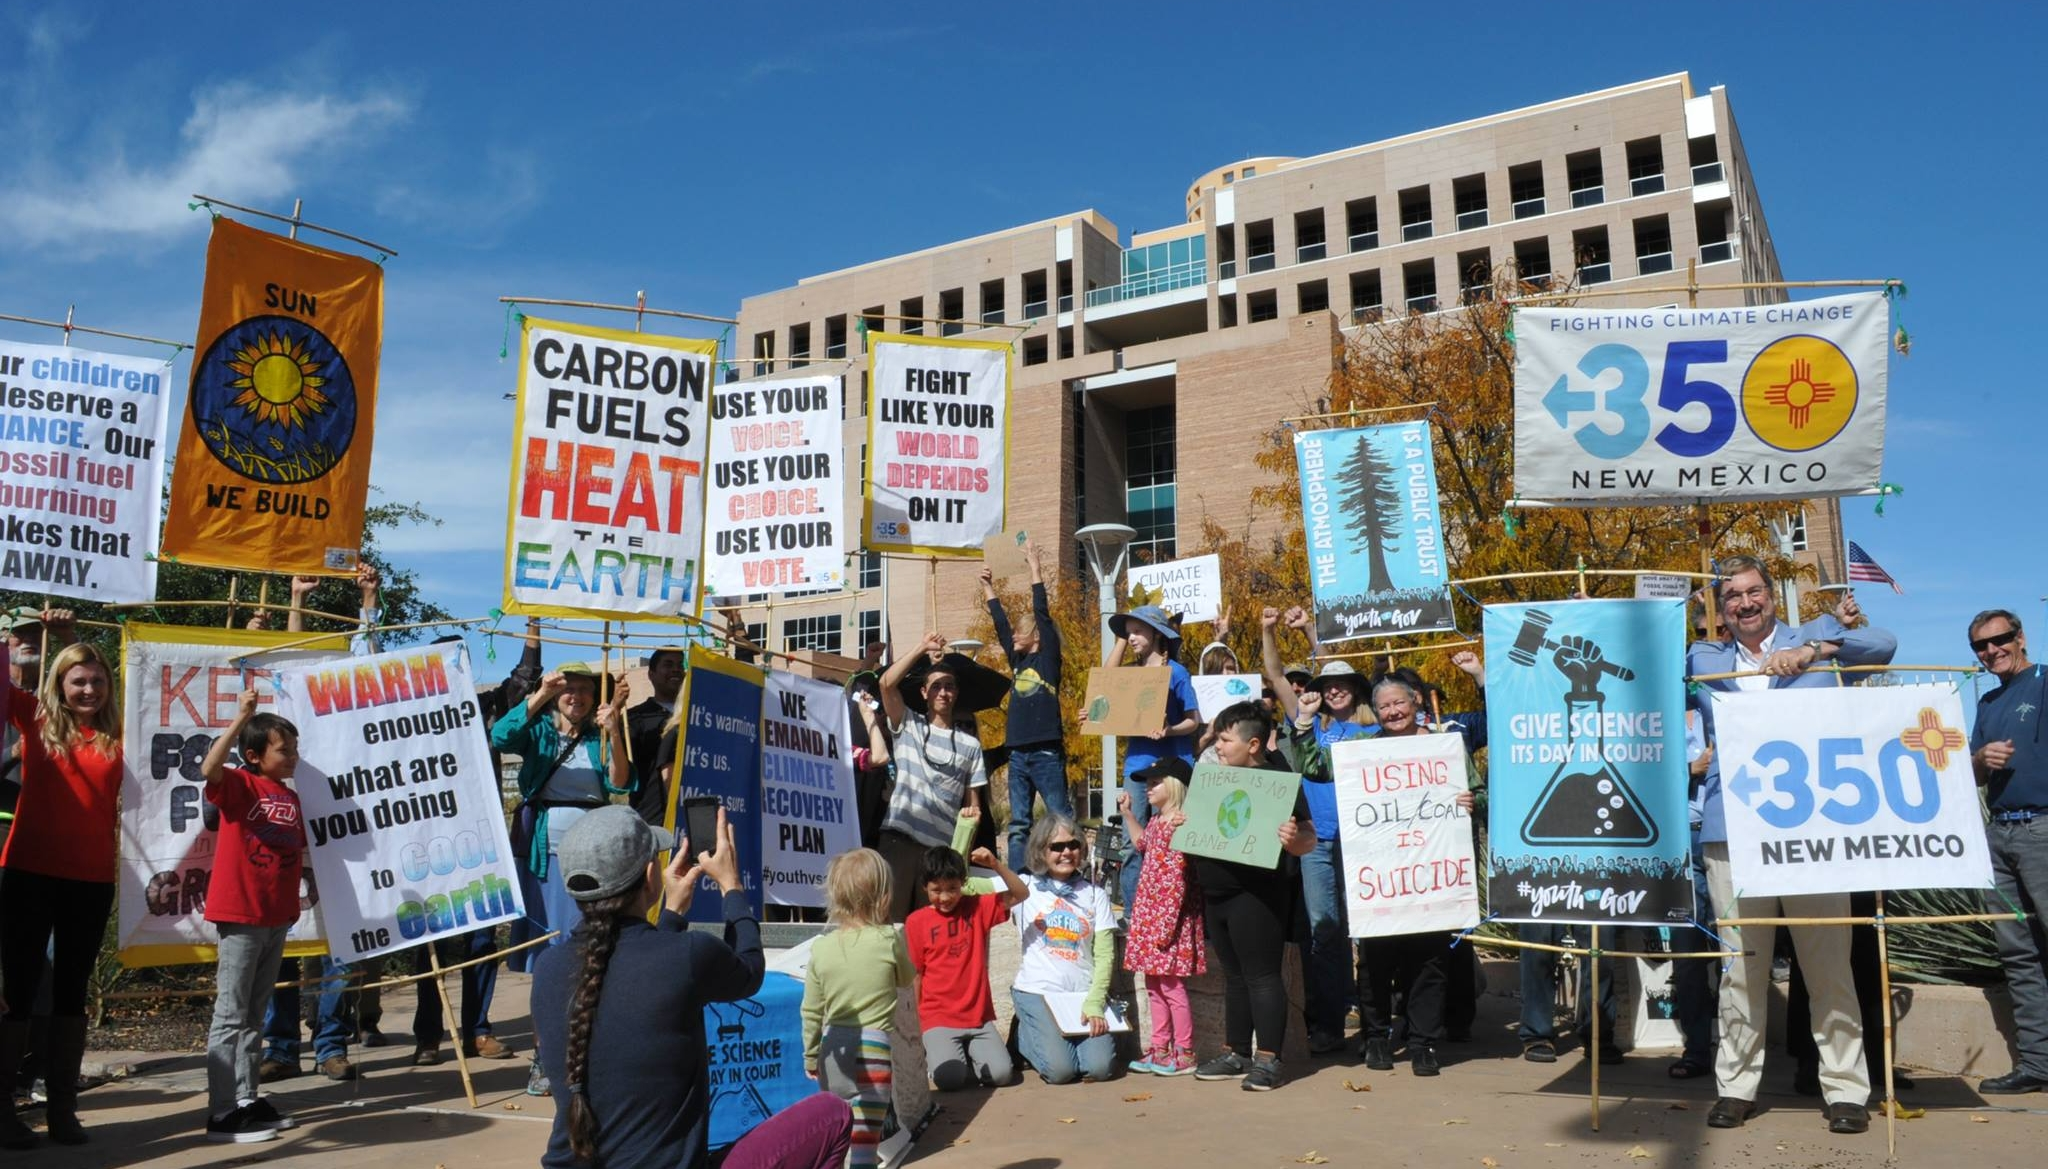 The October 29 rally in Albuquerque, New Mexico to support the  Juliana v United States  plaintiffs on what should have been the first day of their trial.